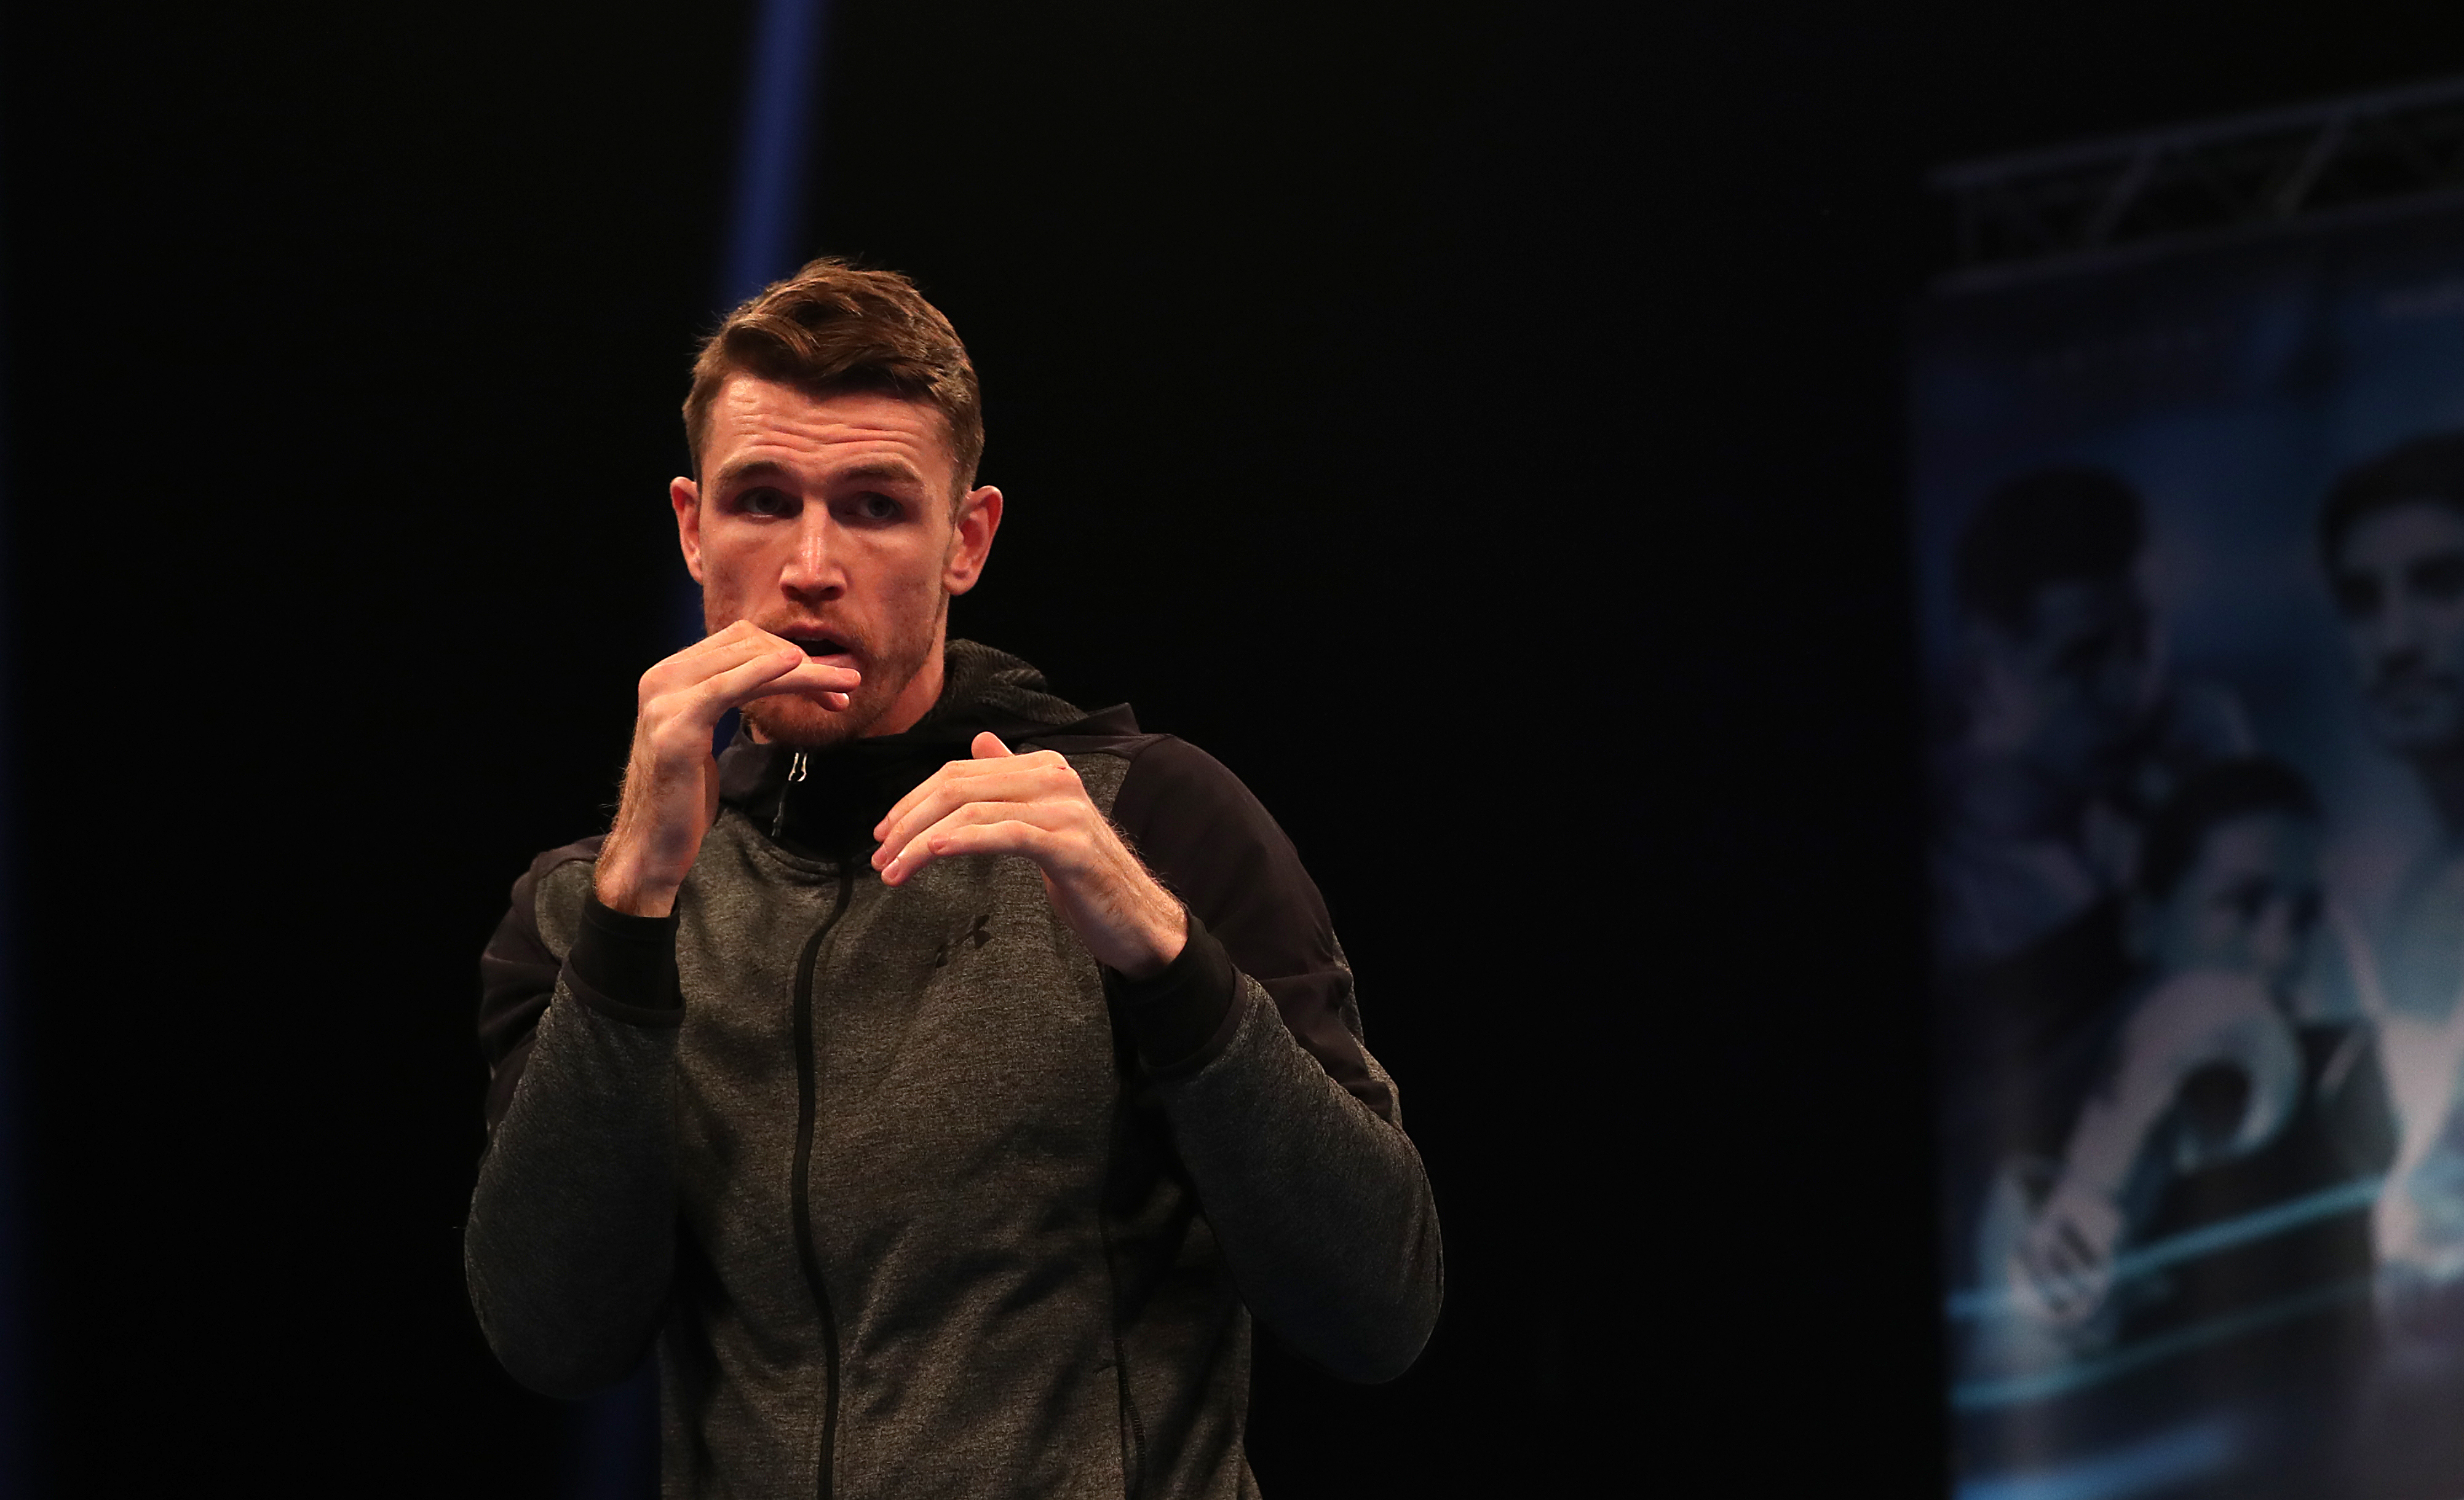 BOXING PREVIEW: Smith v Groves